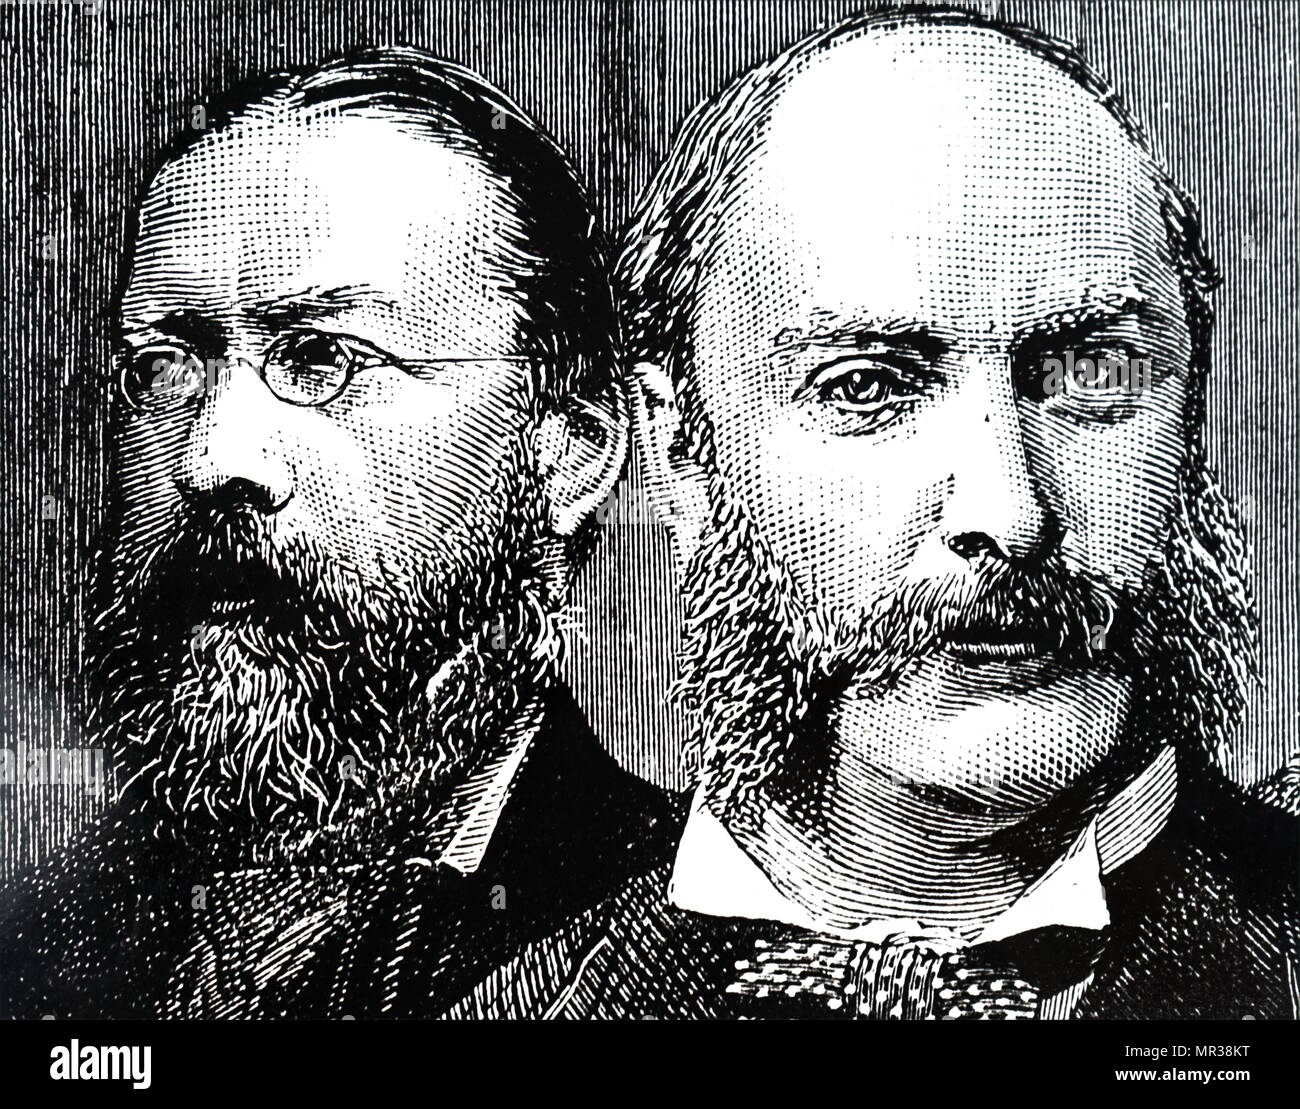 Engraving depicting William Henry Preece and John William Strutt, 3rd Baron Rayleigh. Sir William Henry Preece (1834-1913) a Welsh electrical engineer and inventor. John William Strutt, 3rd Baron Rayleigh (1842-1919) a physicist who, with William Ramsay, discovered argon, an achievement for which he earned the Nobel Prize for Physics in 1904. Dated 19th century - Stock Image